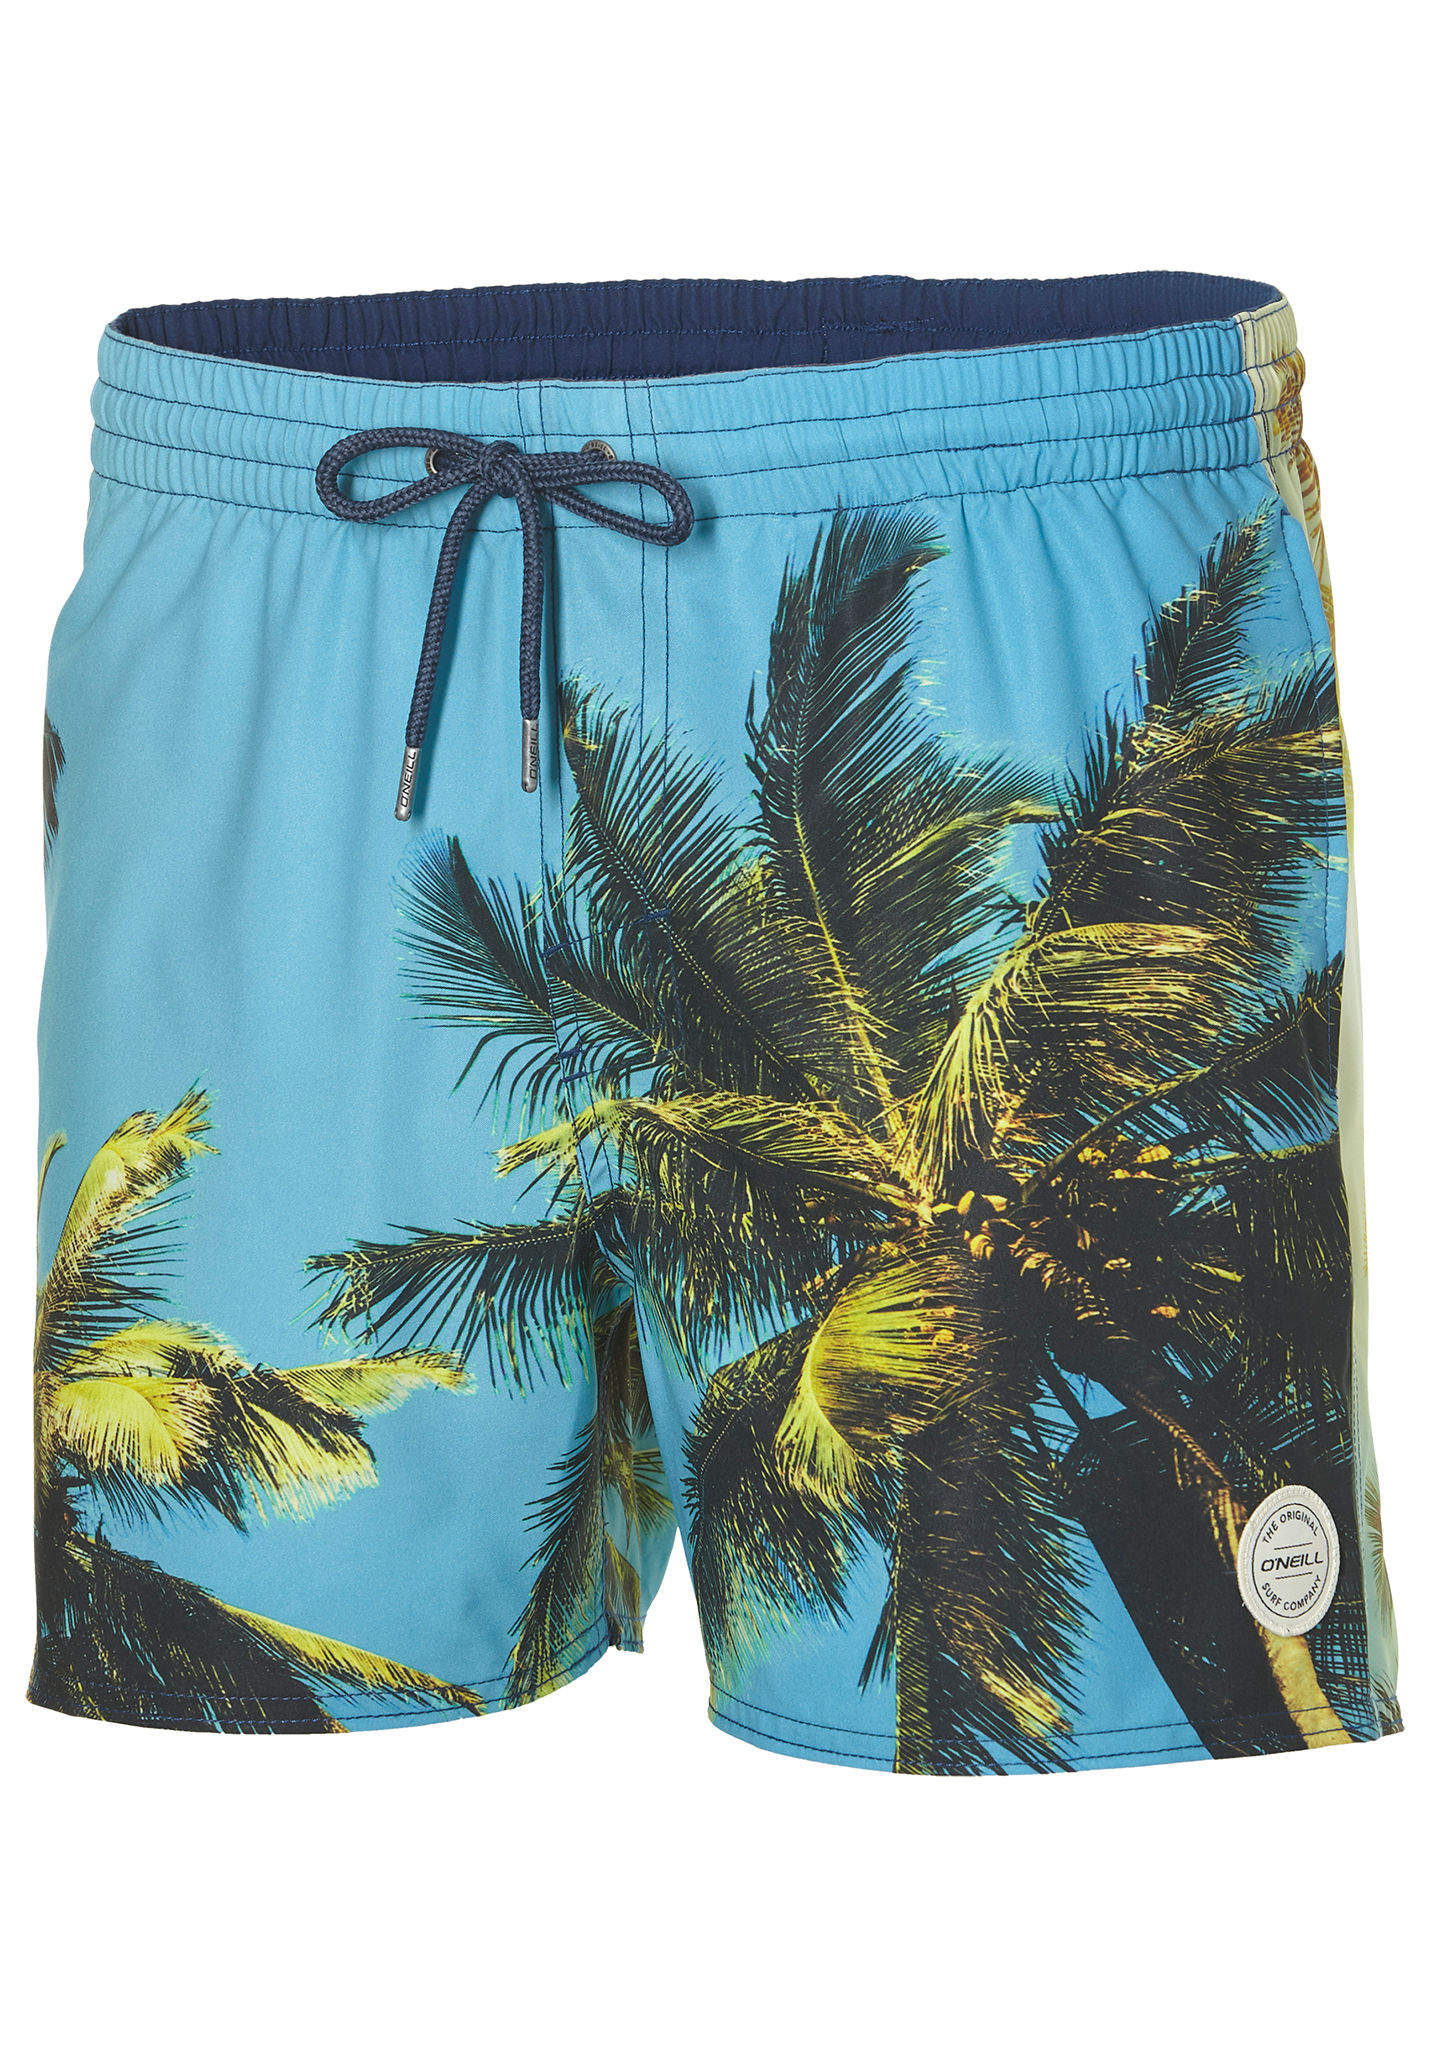 089b75837ef O'Neill Mid Vert Photo Art - Boardshorts for Men - Blue - Planet Sports